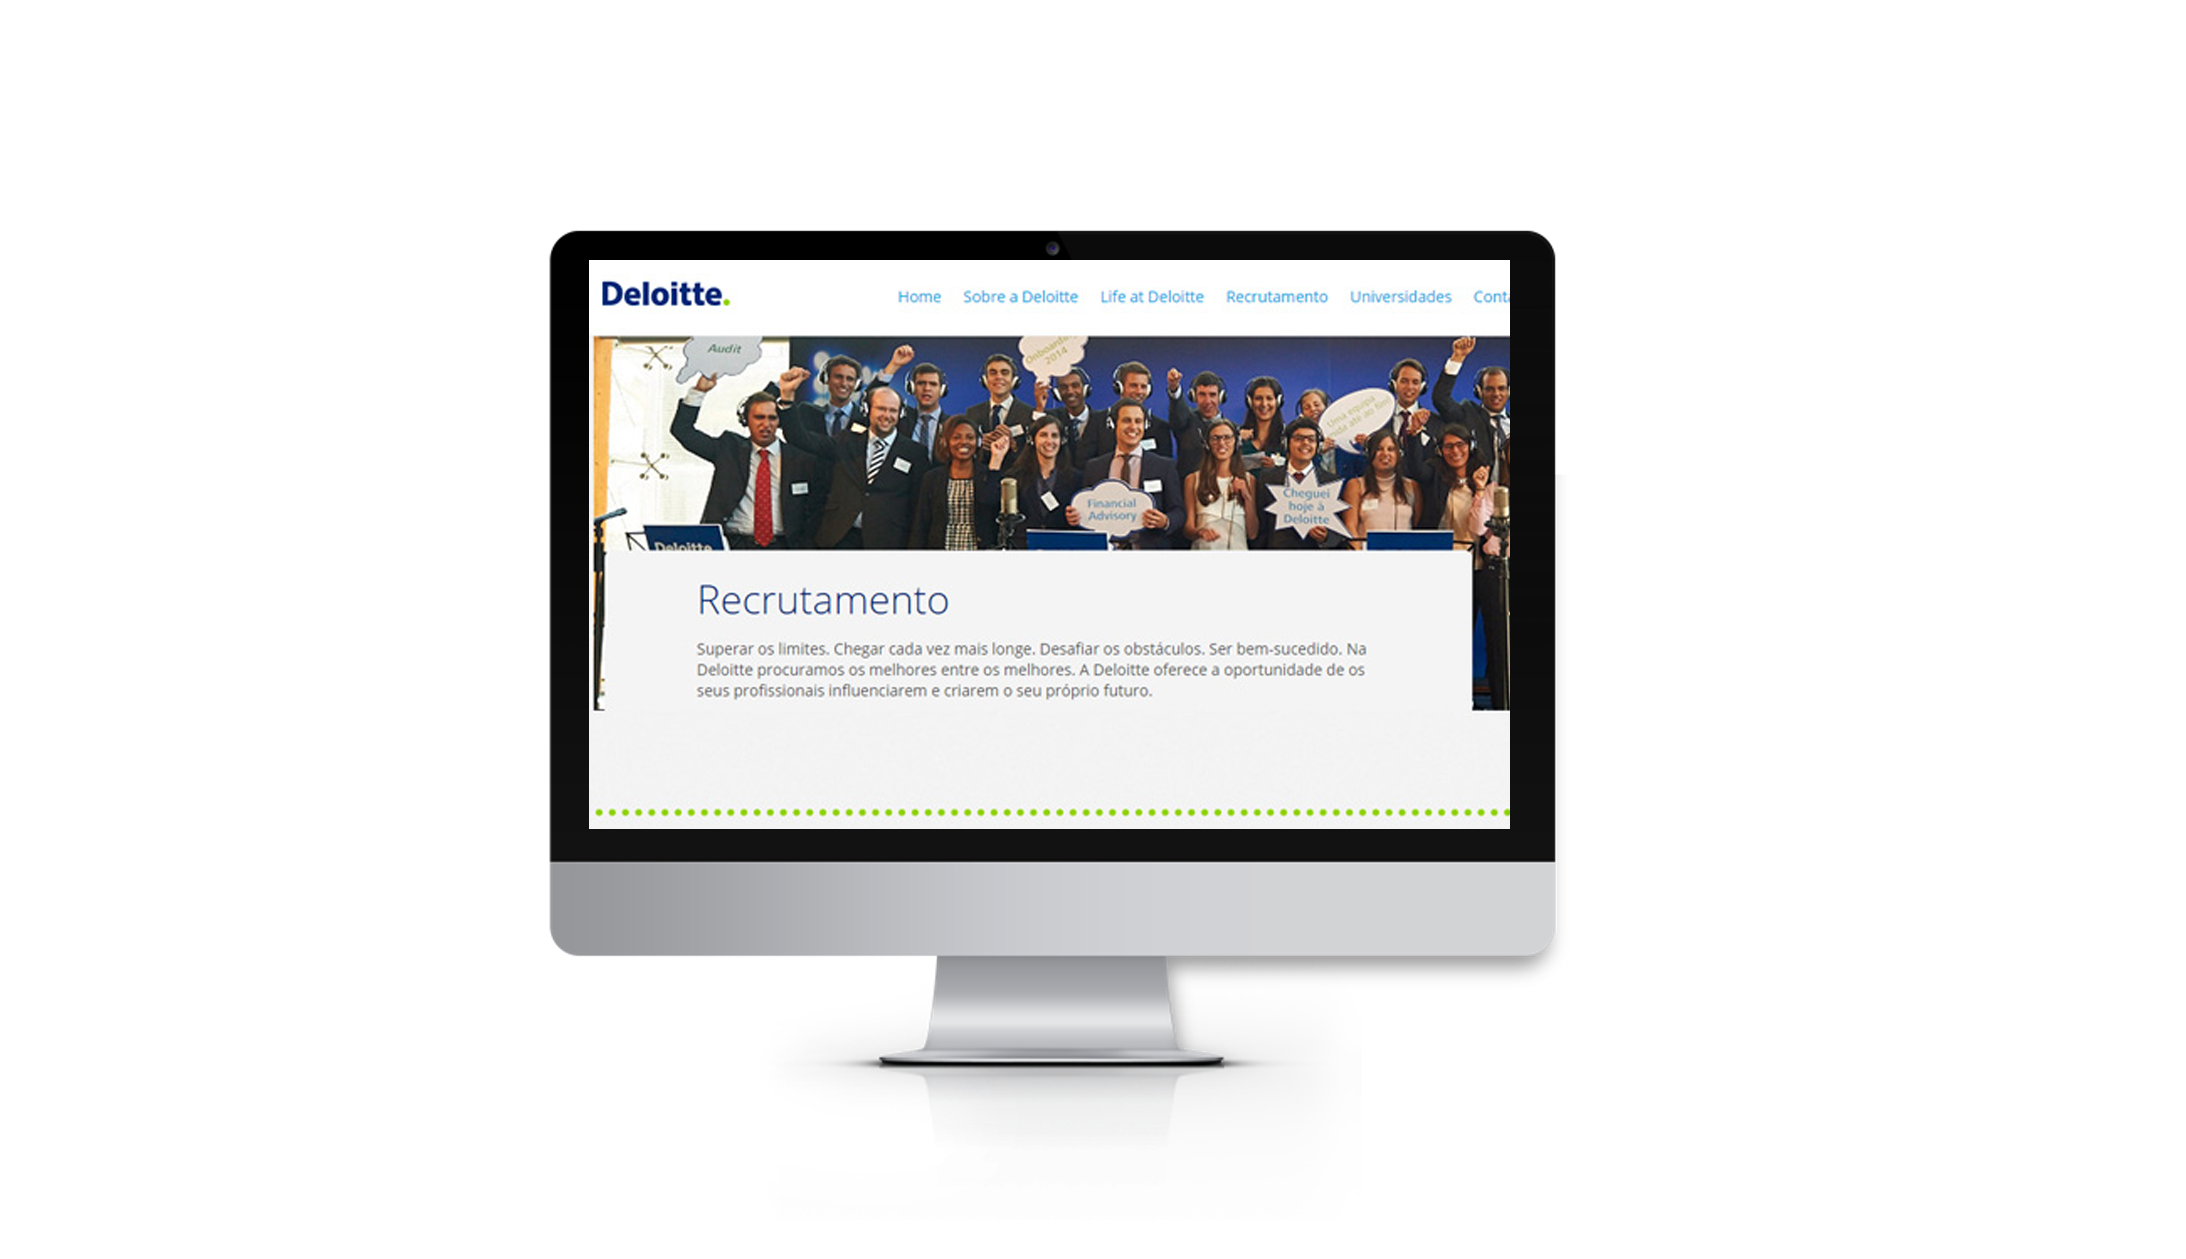 Deloitte Recrutamento Website